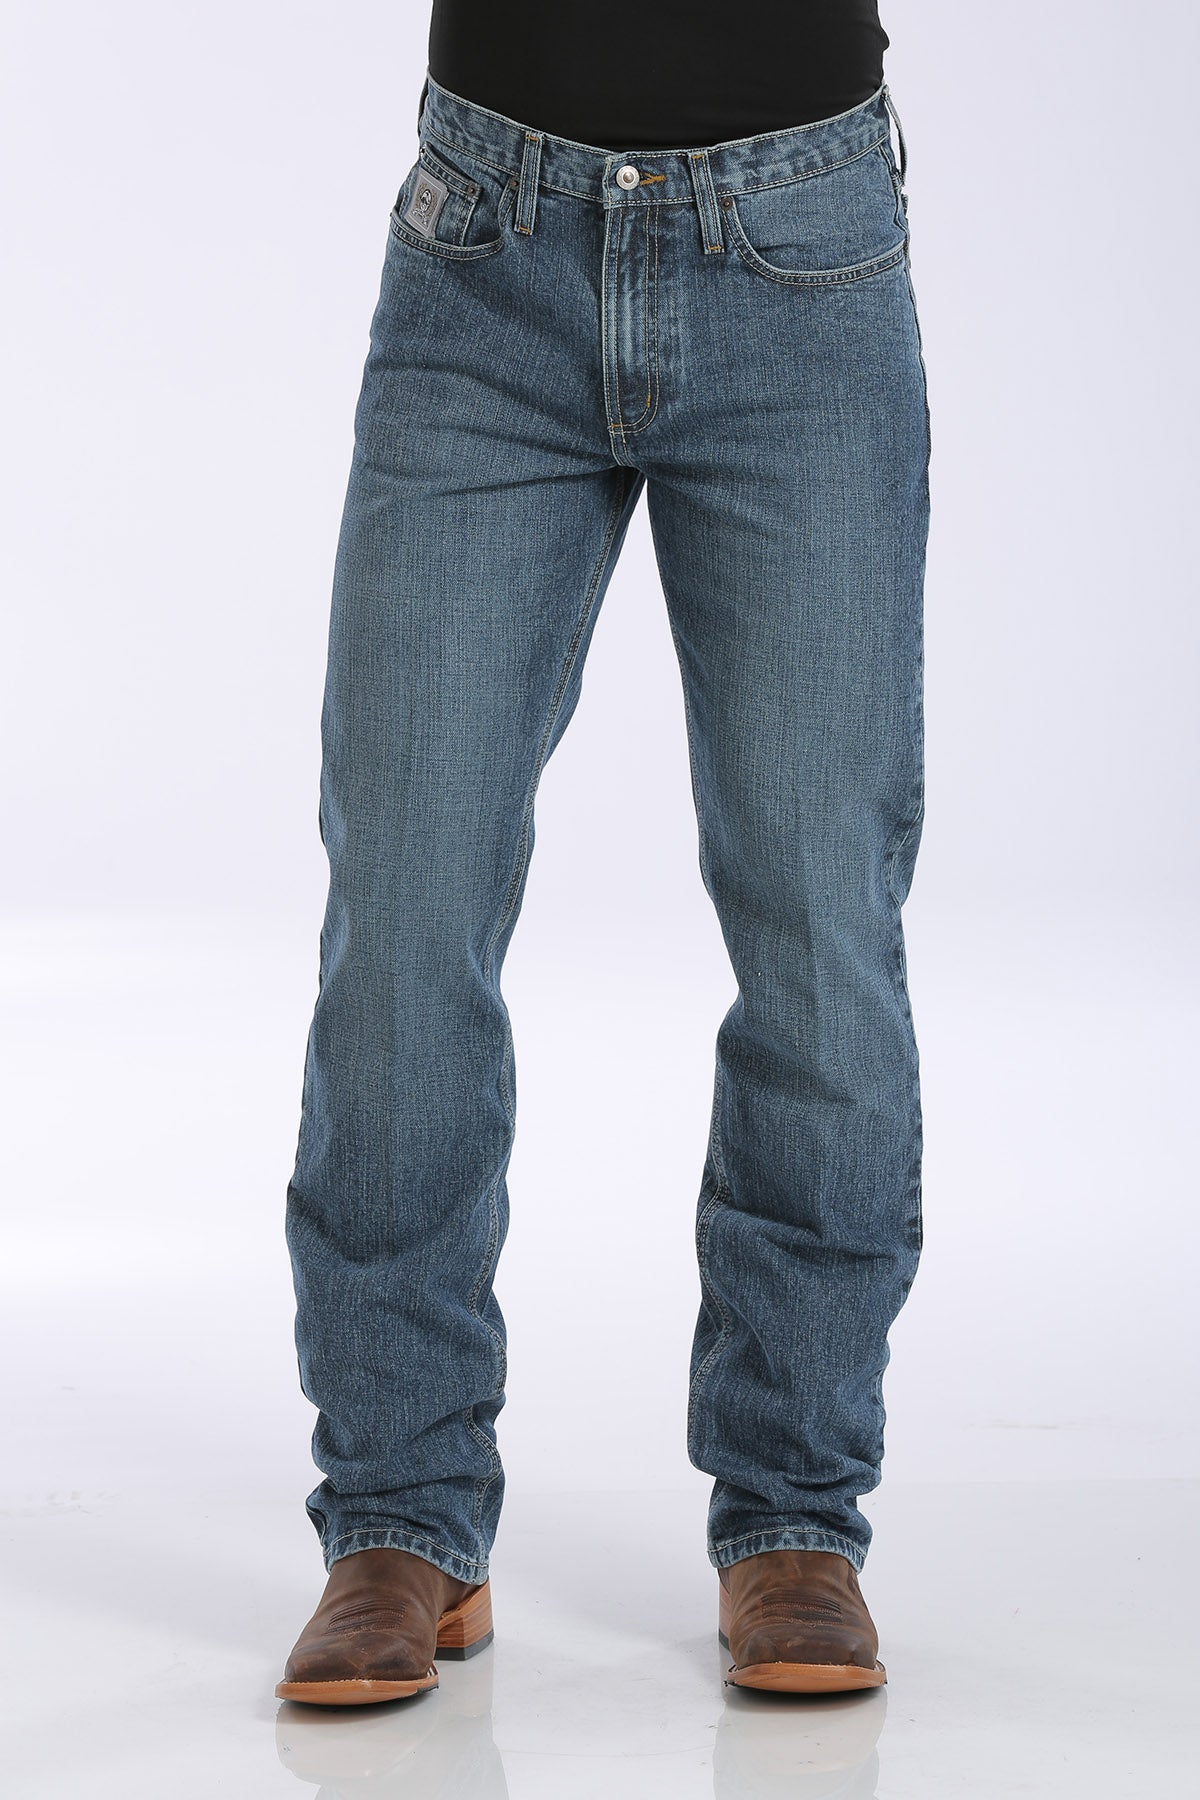 'Cinch' Men's Silver Label Slim Fit - Medium Stonewash